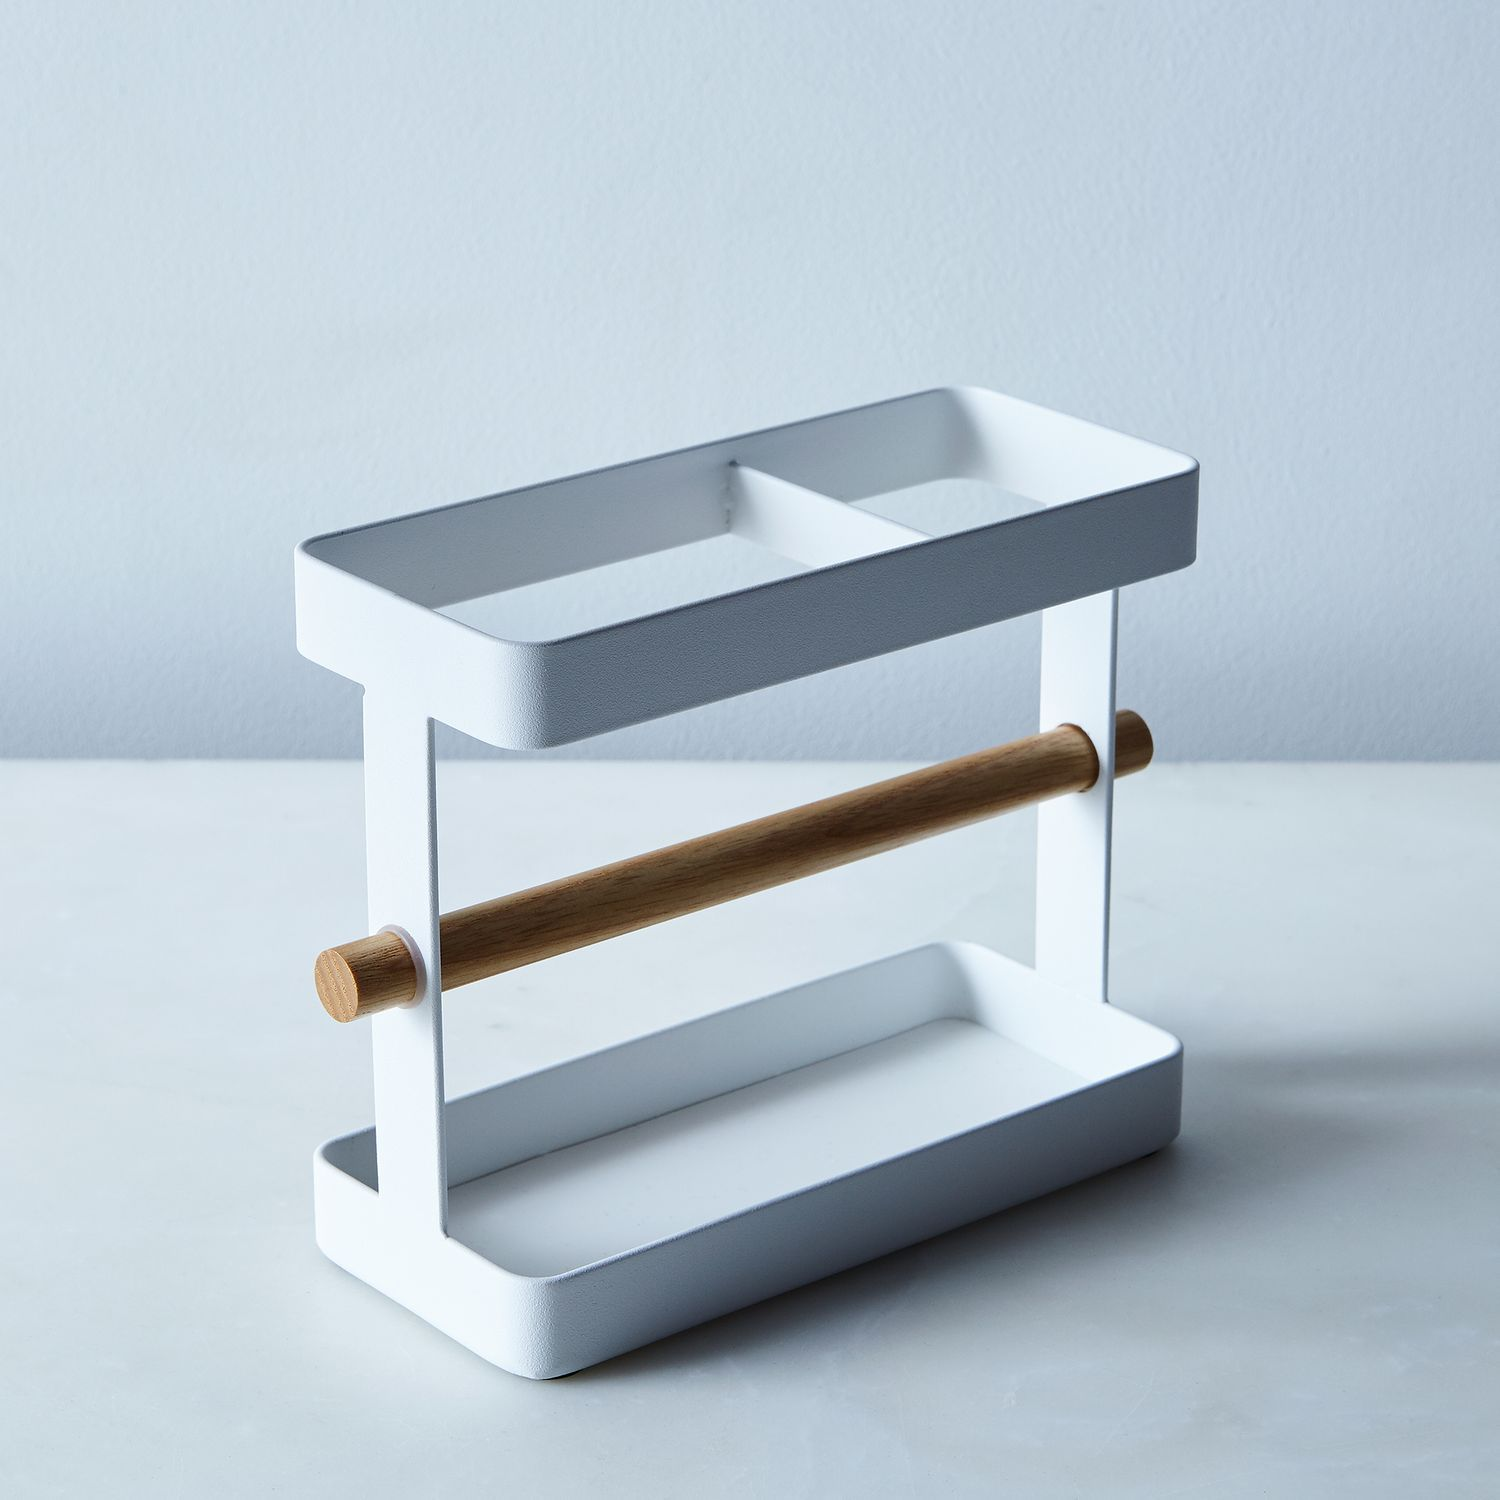 Steel & Wood Kitchen Tool Stand on Food52